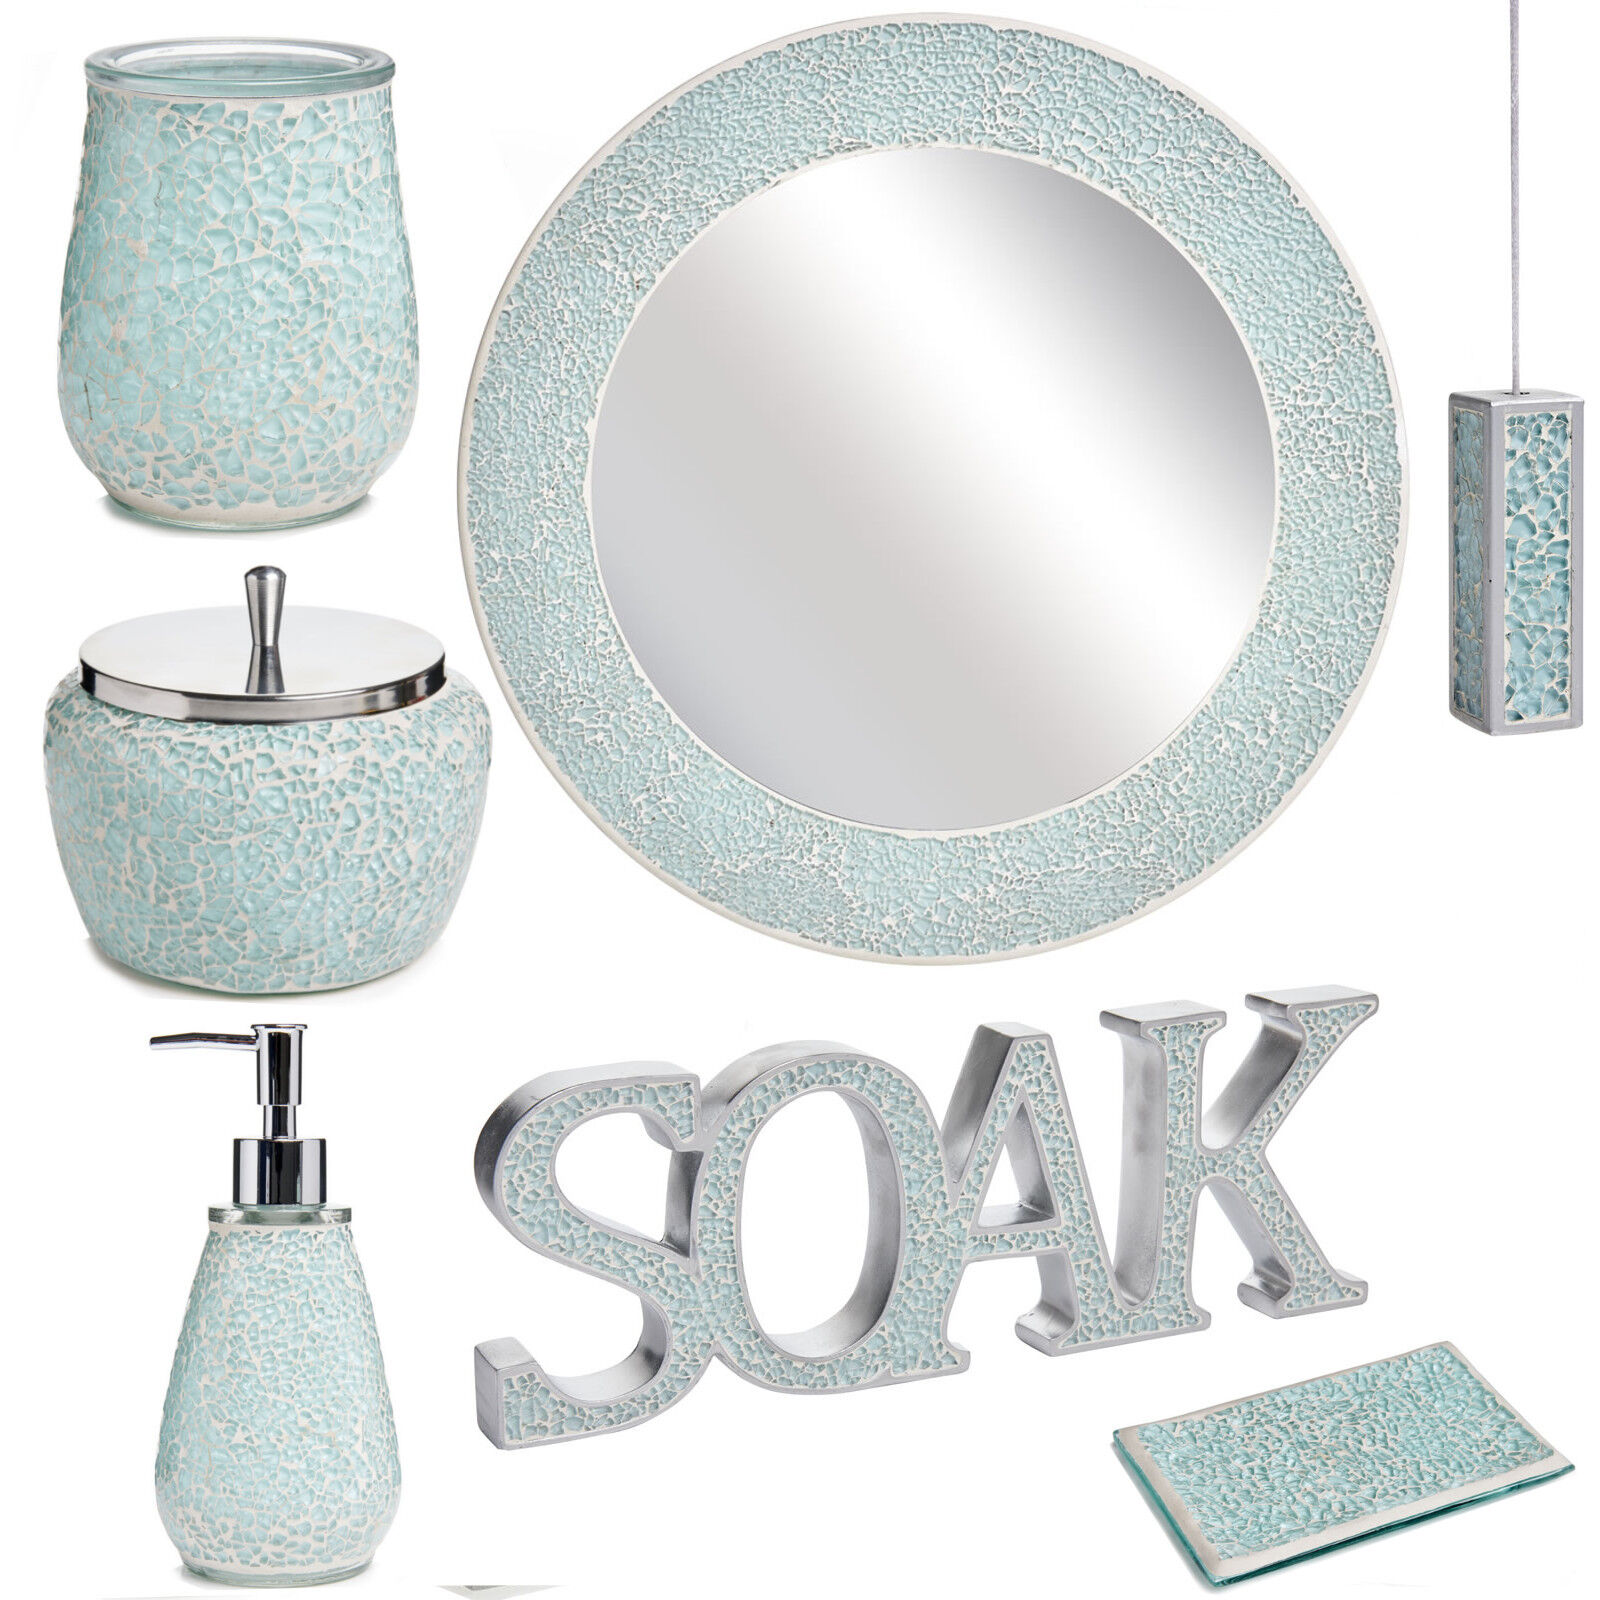 Aqua sparkle mosaic bathroom accessories set ebay for Toilet accessories